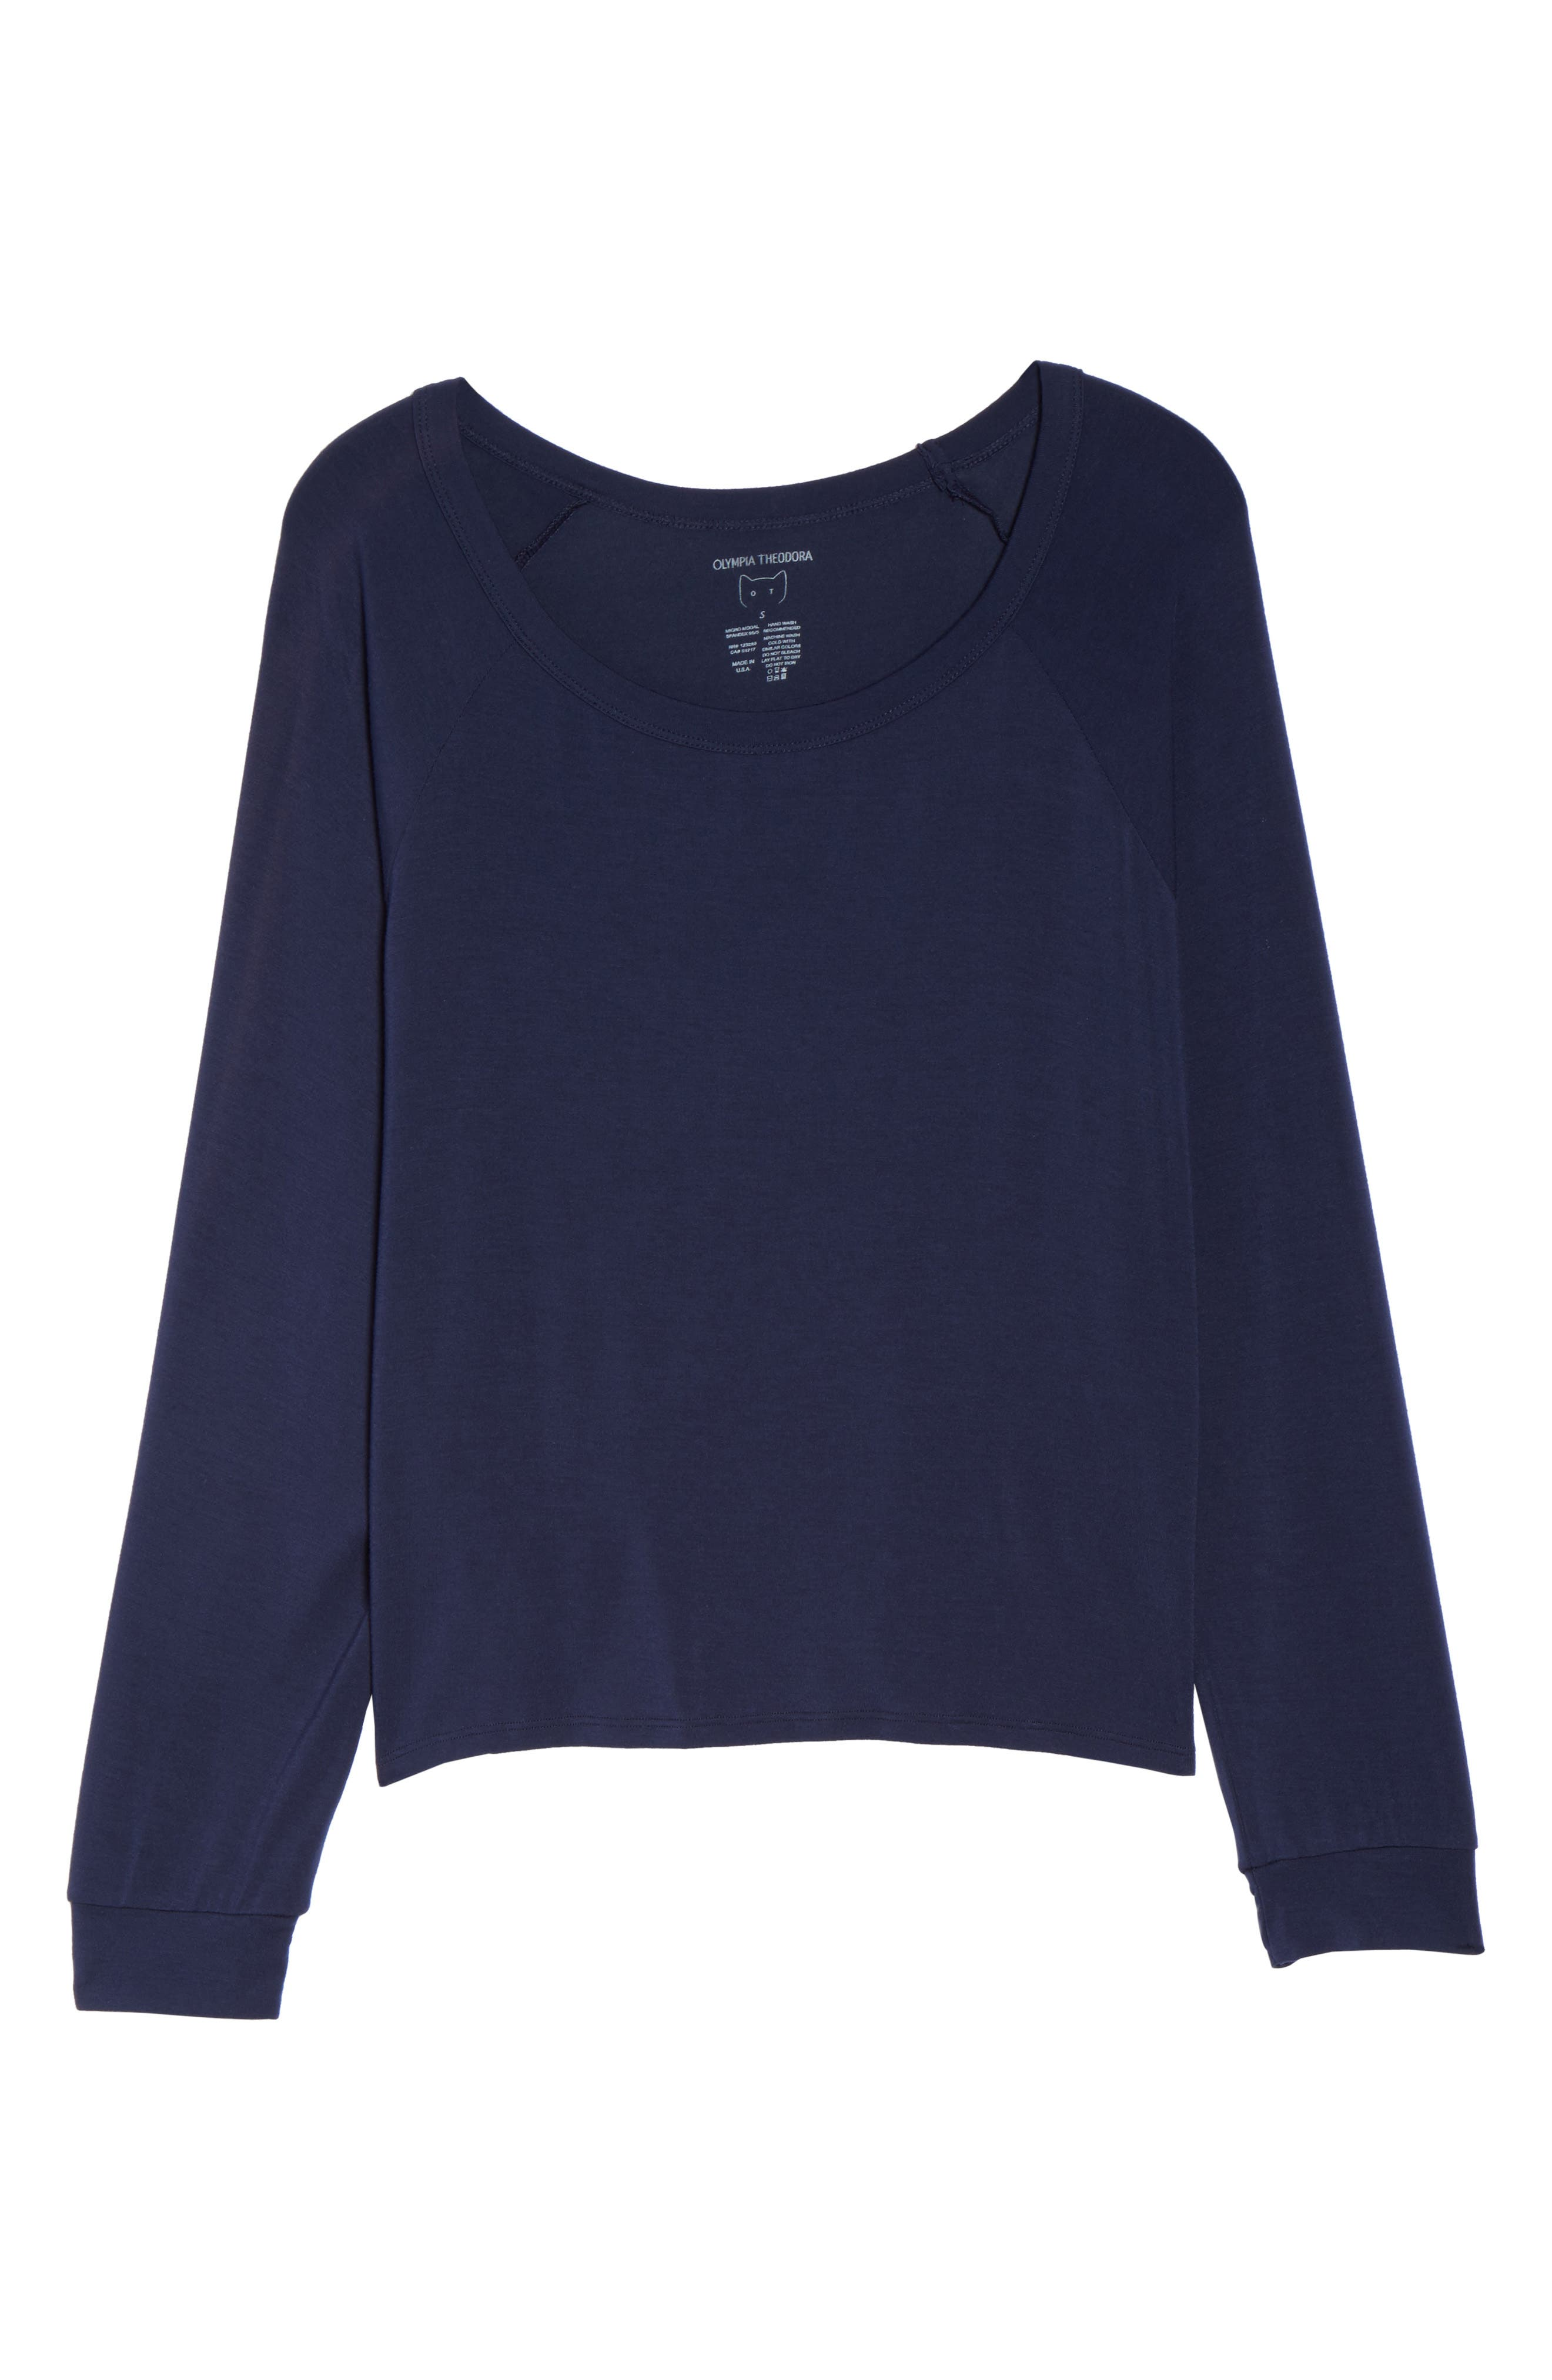 Amber Long Sleeve Top,                             Alternate thumbnail 4, color,                             Twilight